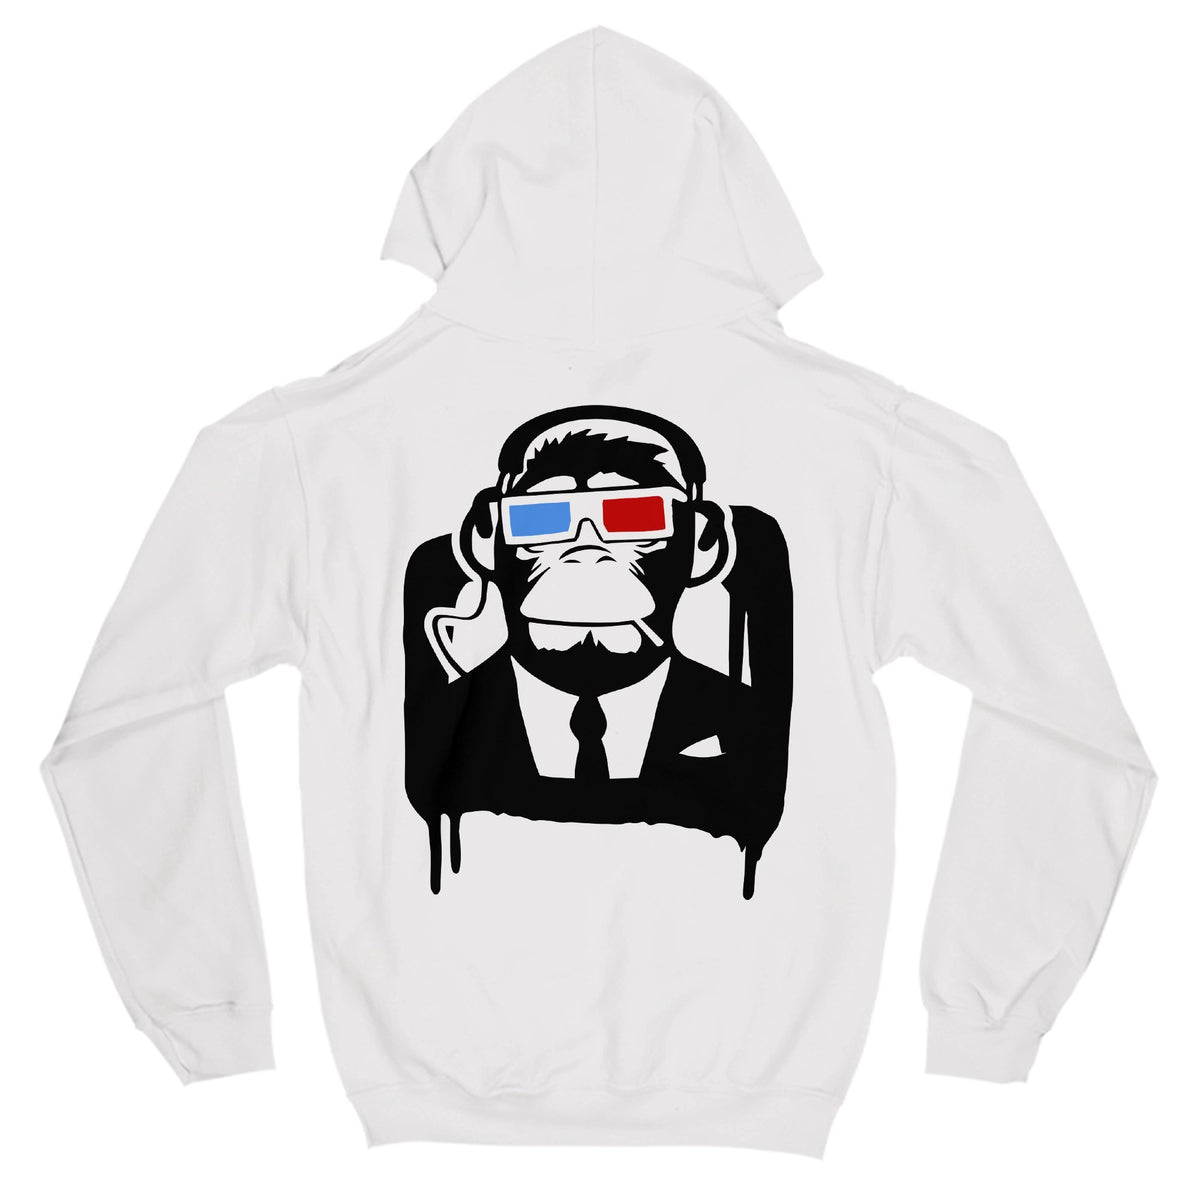 3D Monkey Primate Novelty Hoodie Adults: S